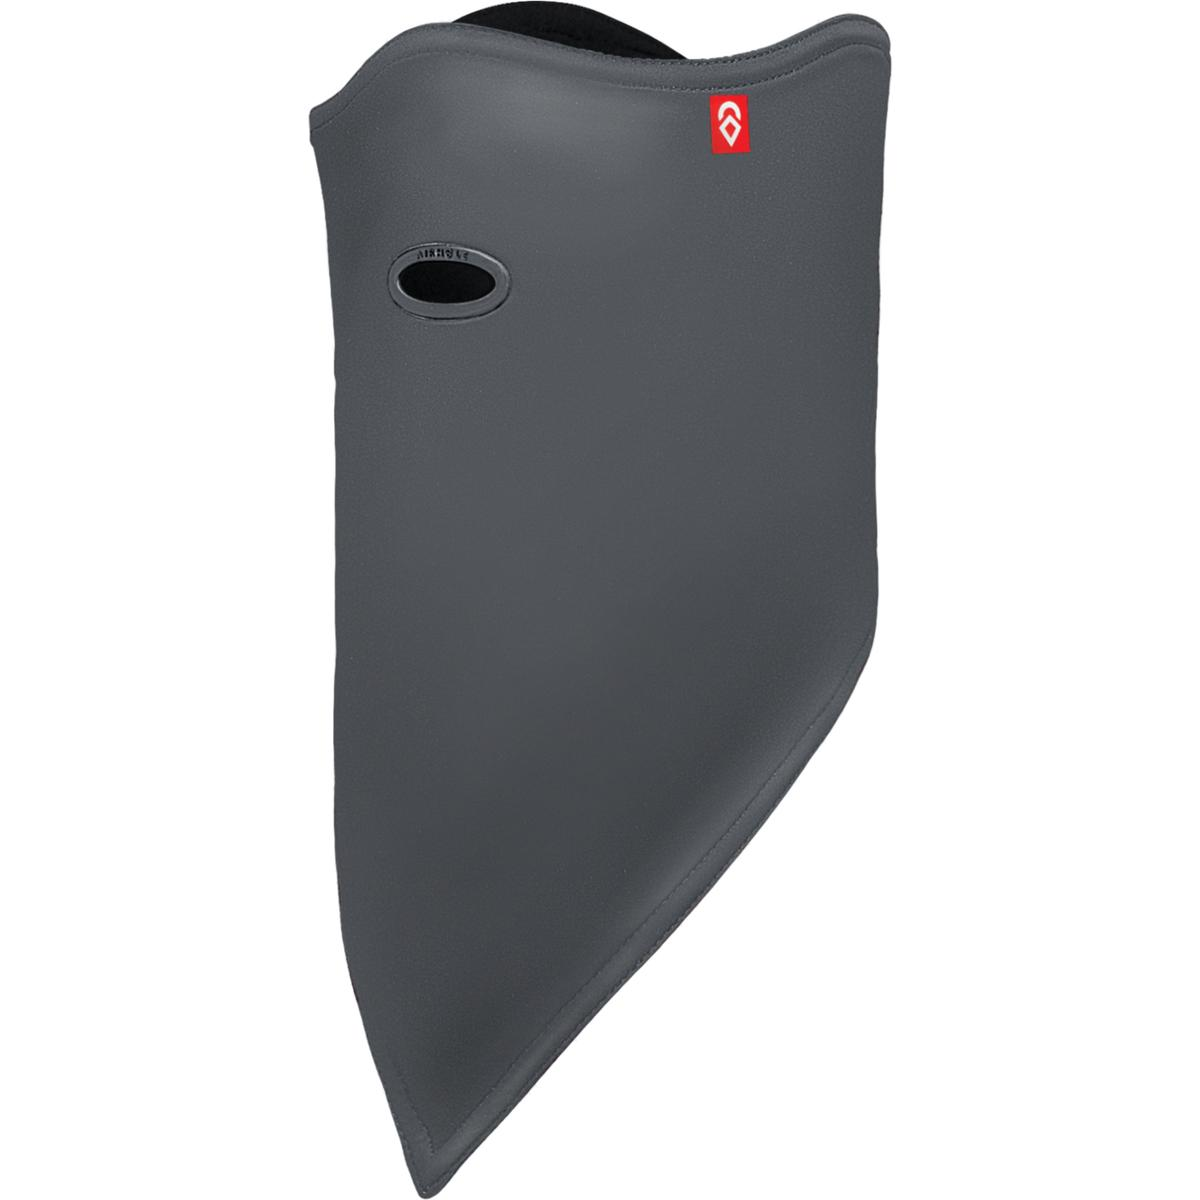 Airhole 2 Layer Standard Facemask